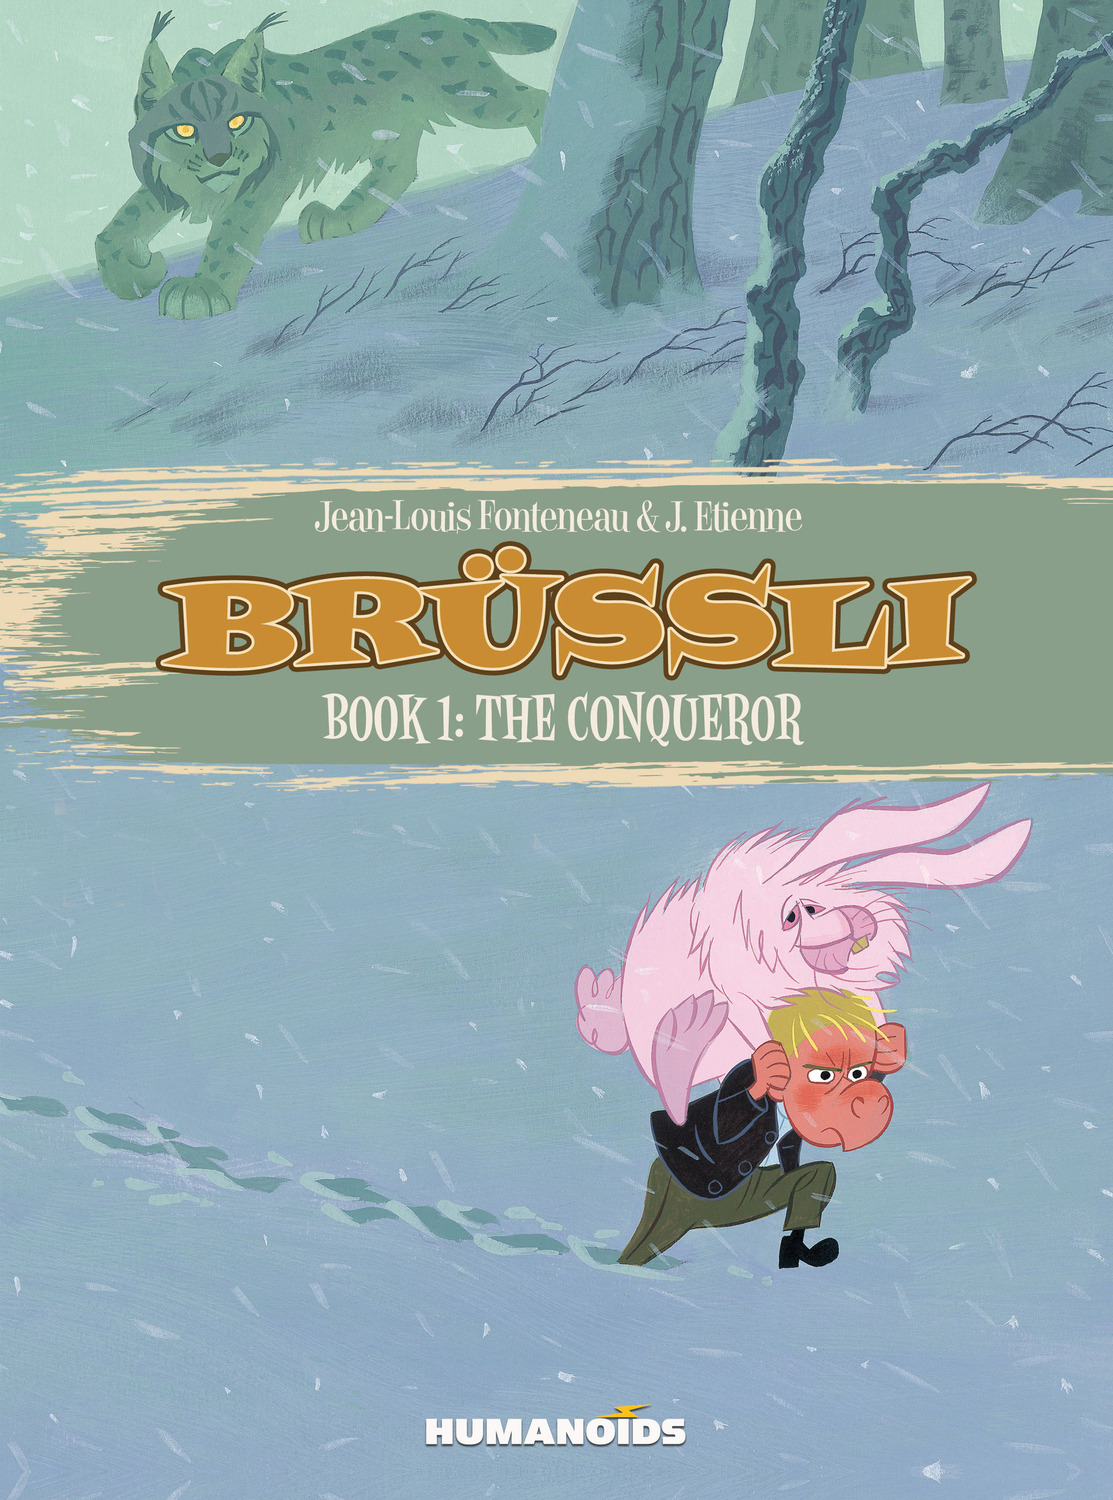 Brussli - Way of the Dragon Boy #1 : The Conqueror - Digital Comic